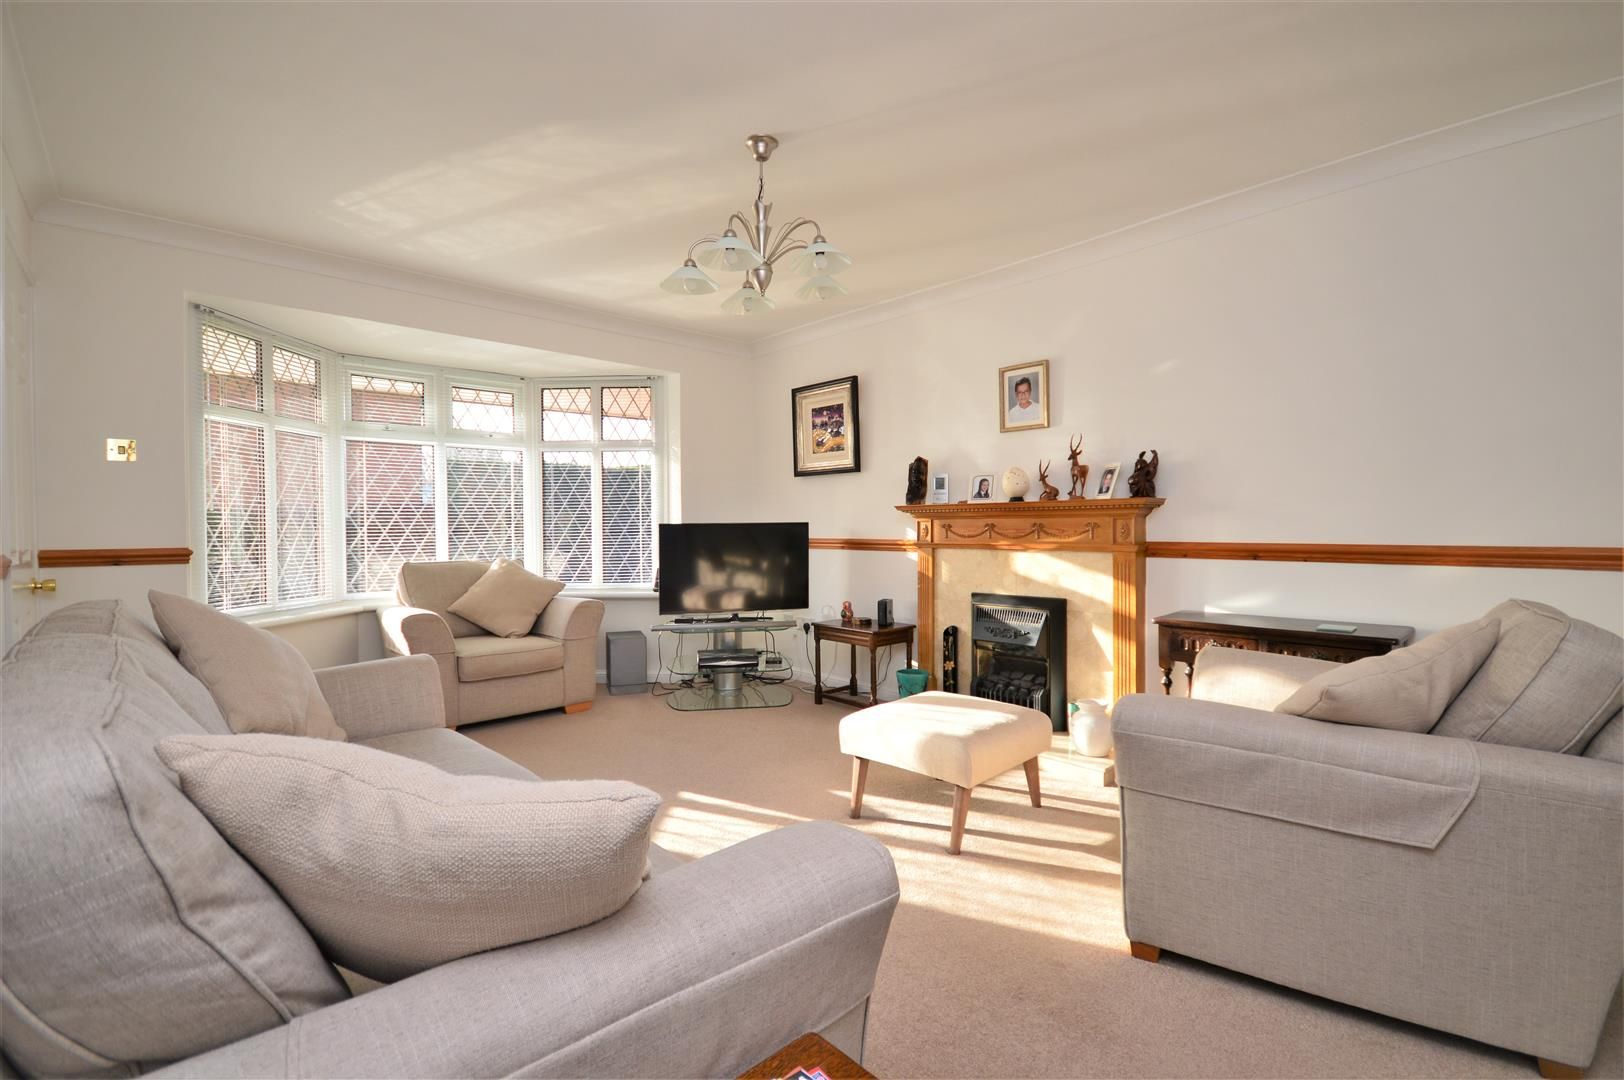 4 bed detached for sale in Hereford  - Property Image 2